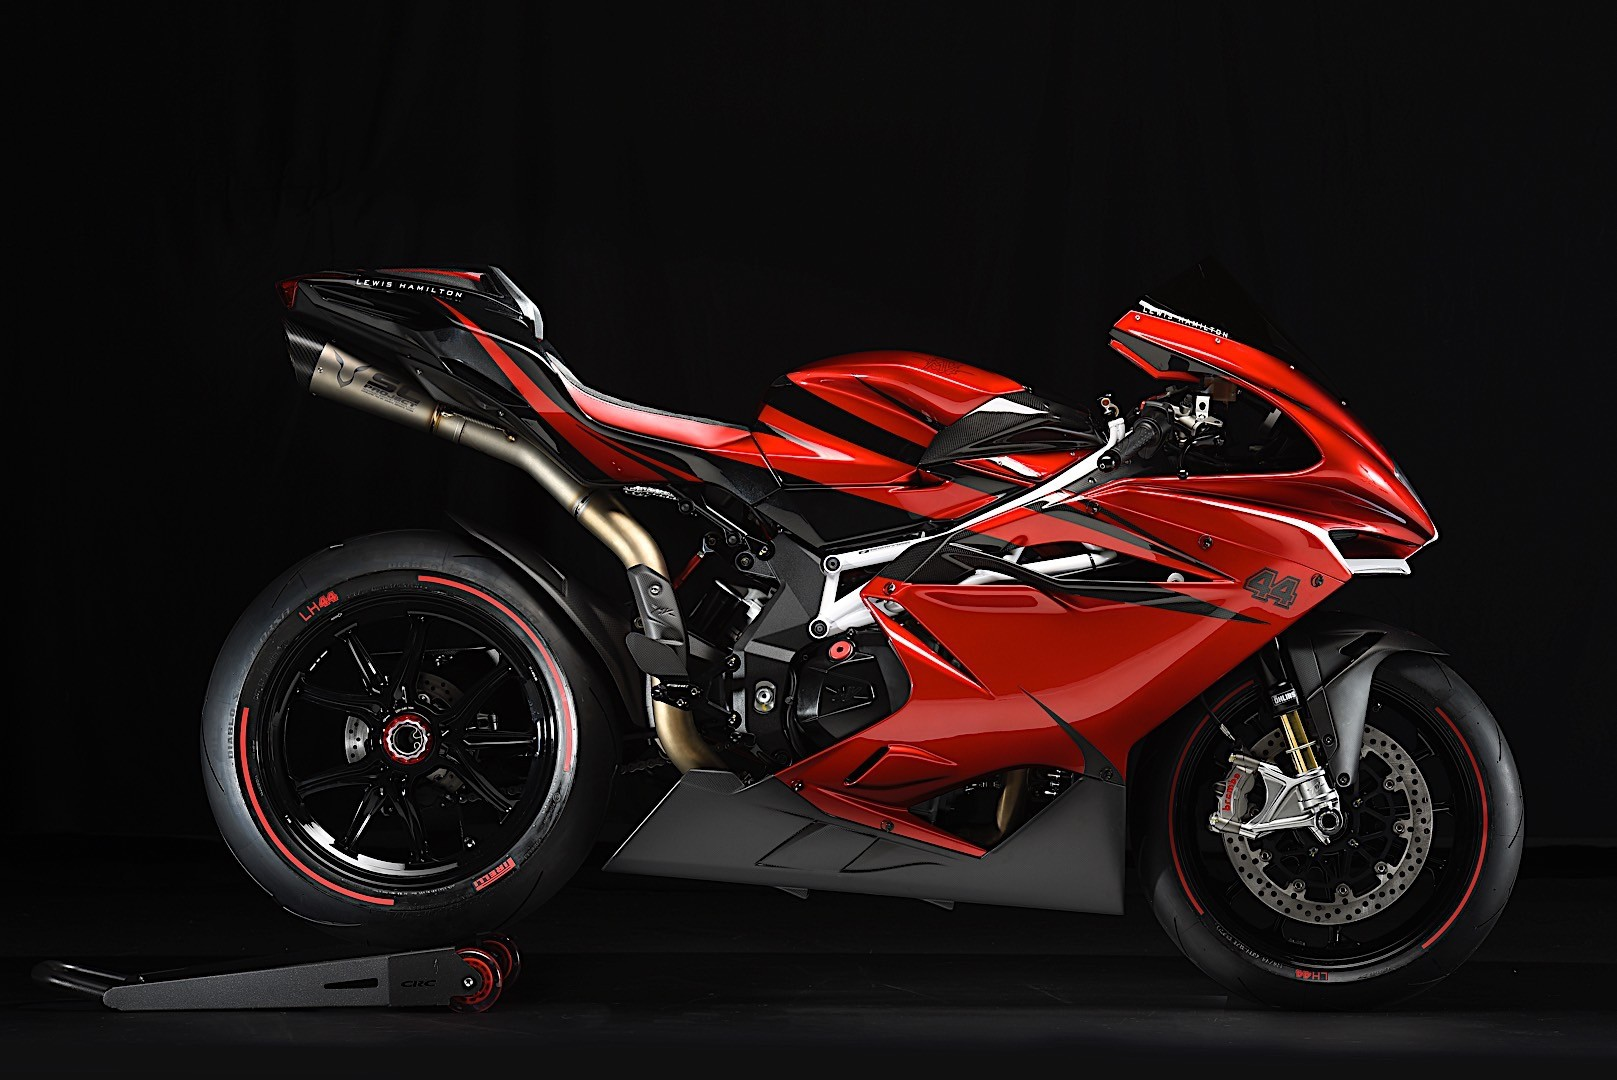 mv agusta f4 lh44 piggybacks on lewis hamilton 39 s fame autoevolution. Black Bedroom Furniture Sets. Home Design Ideas